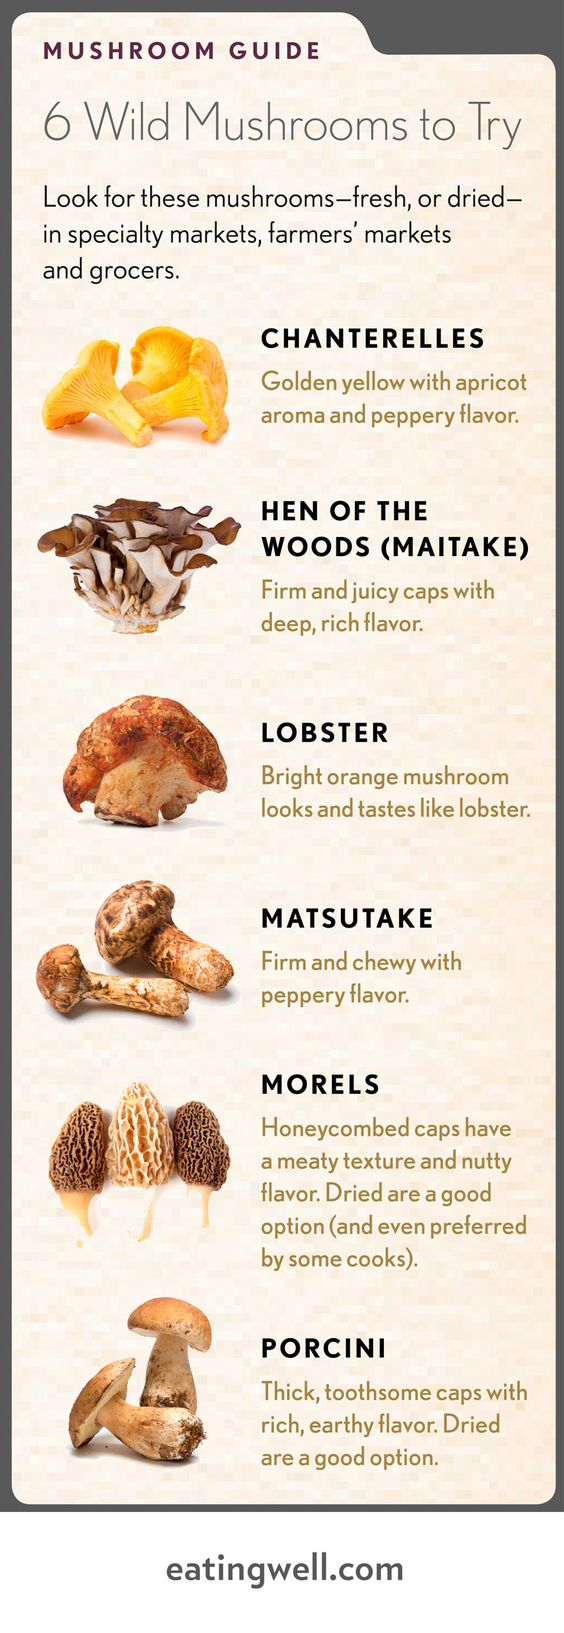 6 Wild Mushrooms Anatom